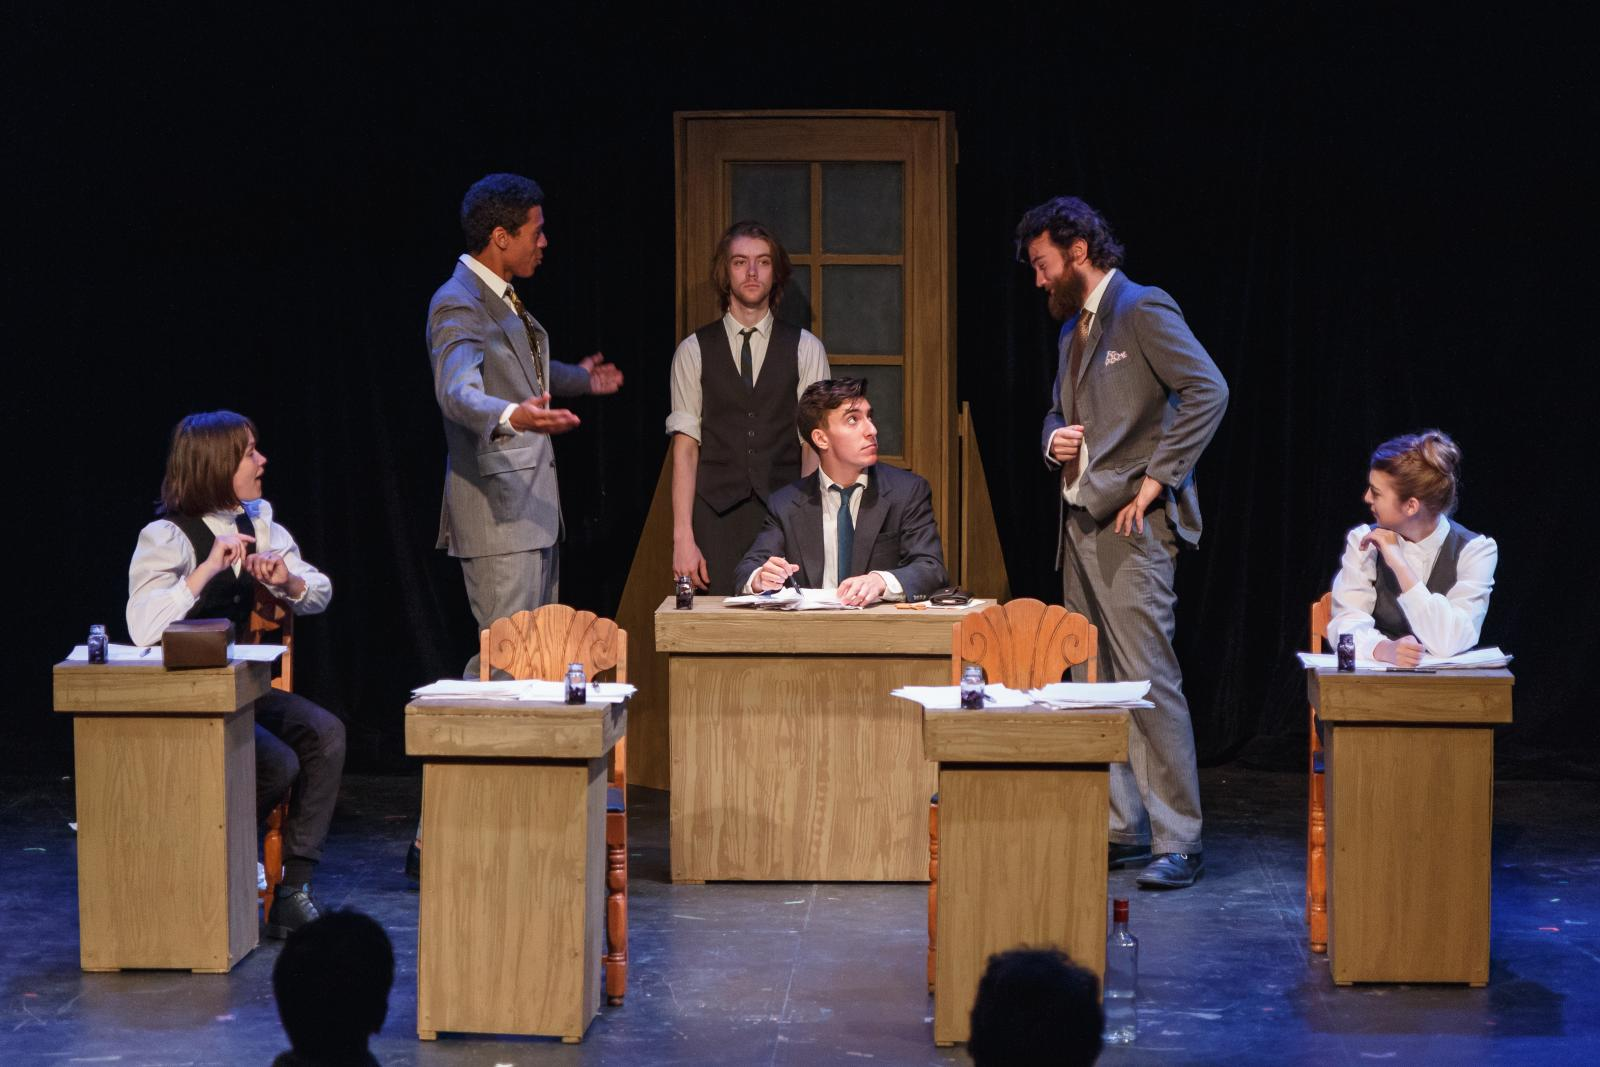 """Bartleby"" presented by The Windmill Company at Mixed Blood Theatre"